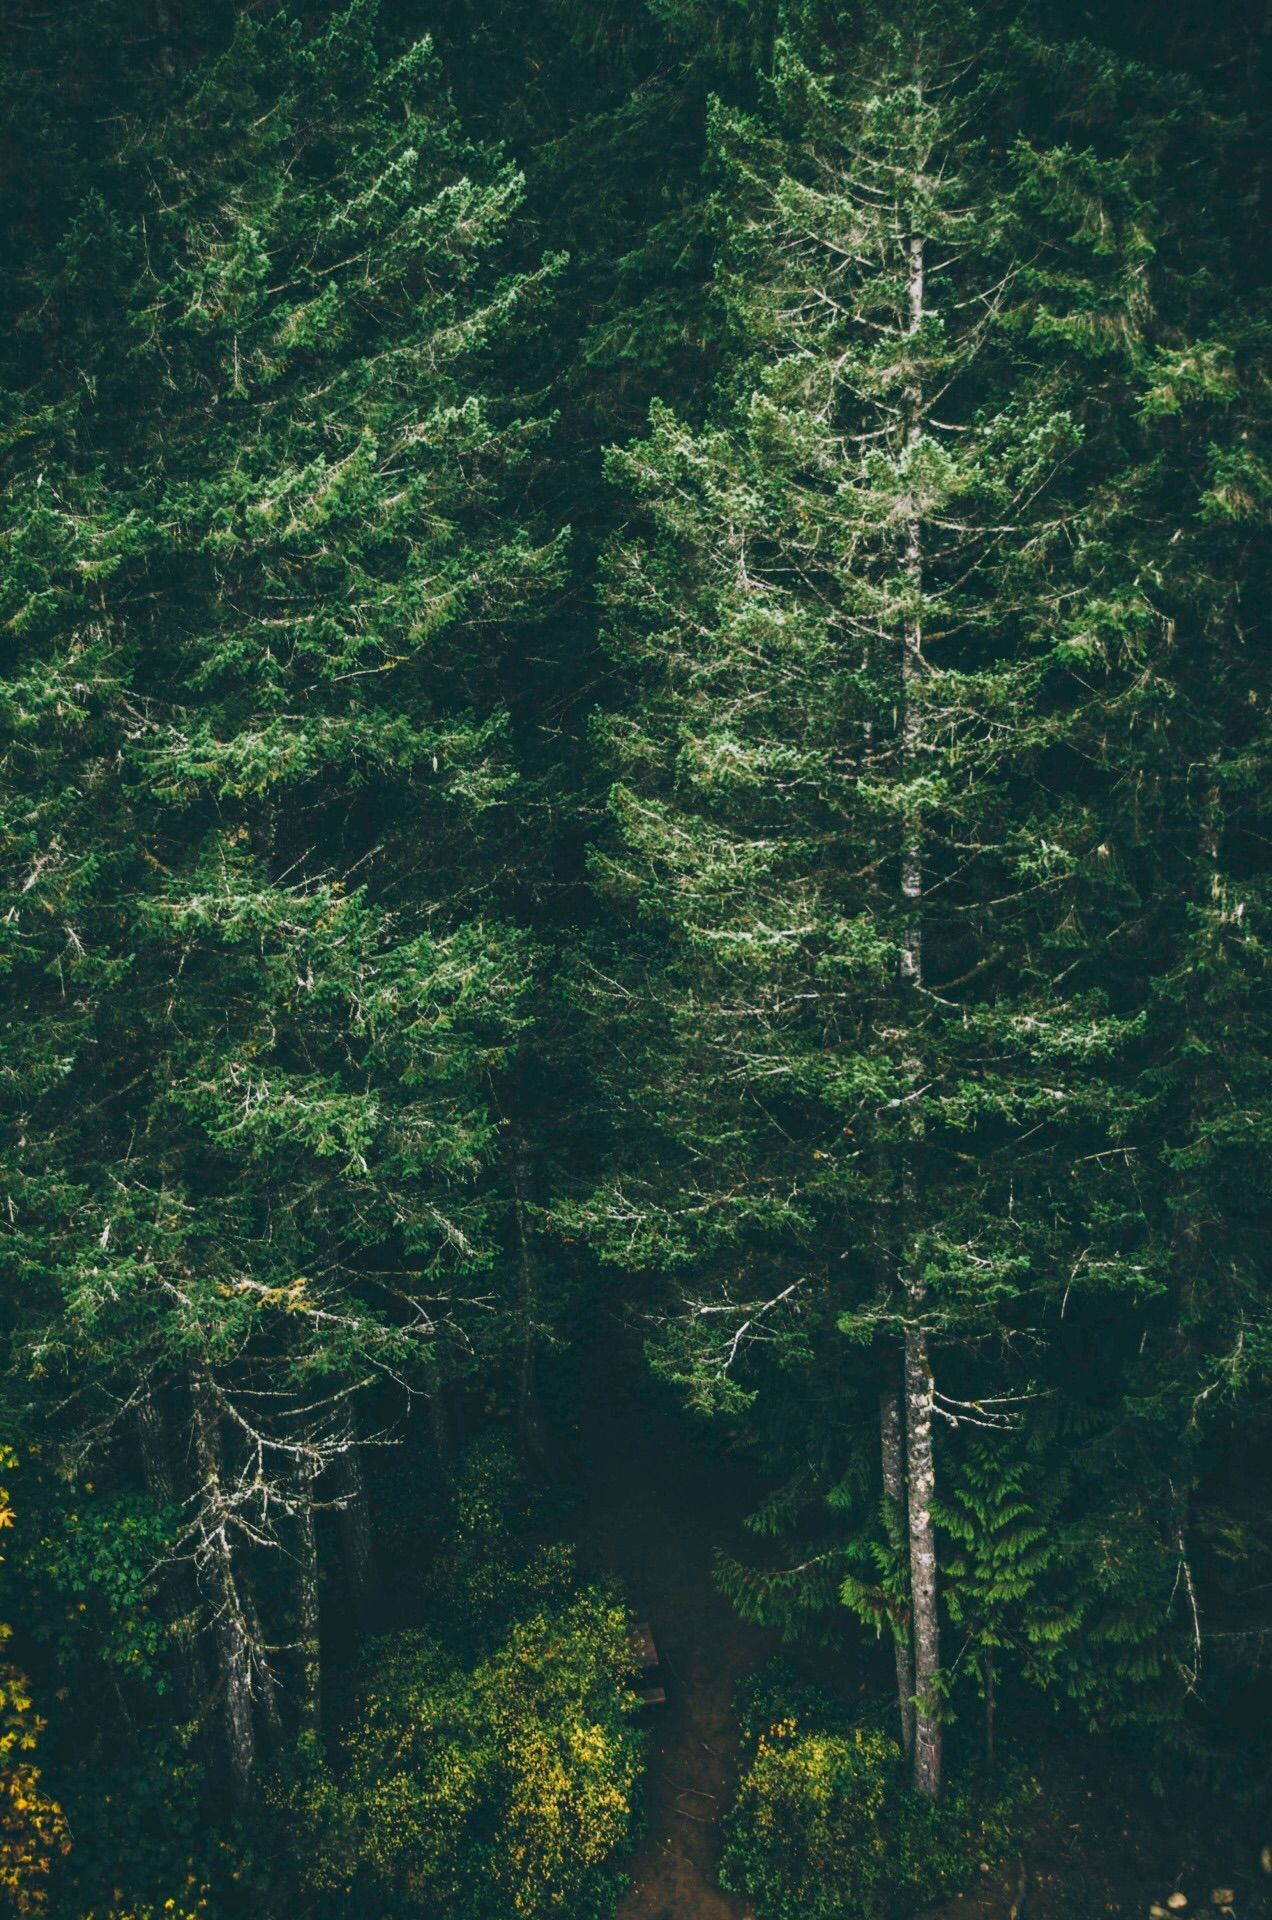 Https All Images Net Different Green Tree Forest Nature Tropical Photography Wallpapers Download Luxury Green Forest Trees I Nature Photography Nature Forest